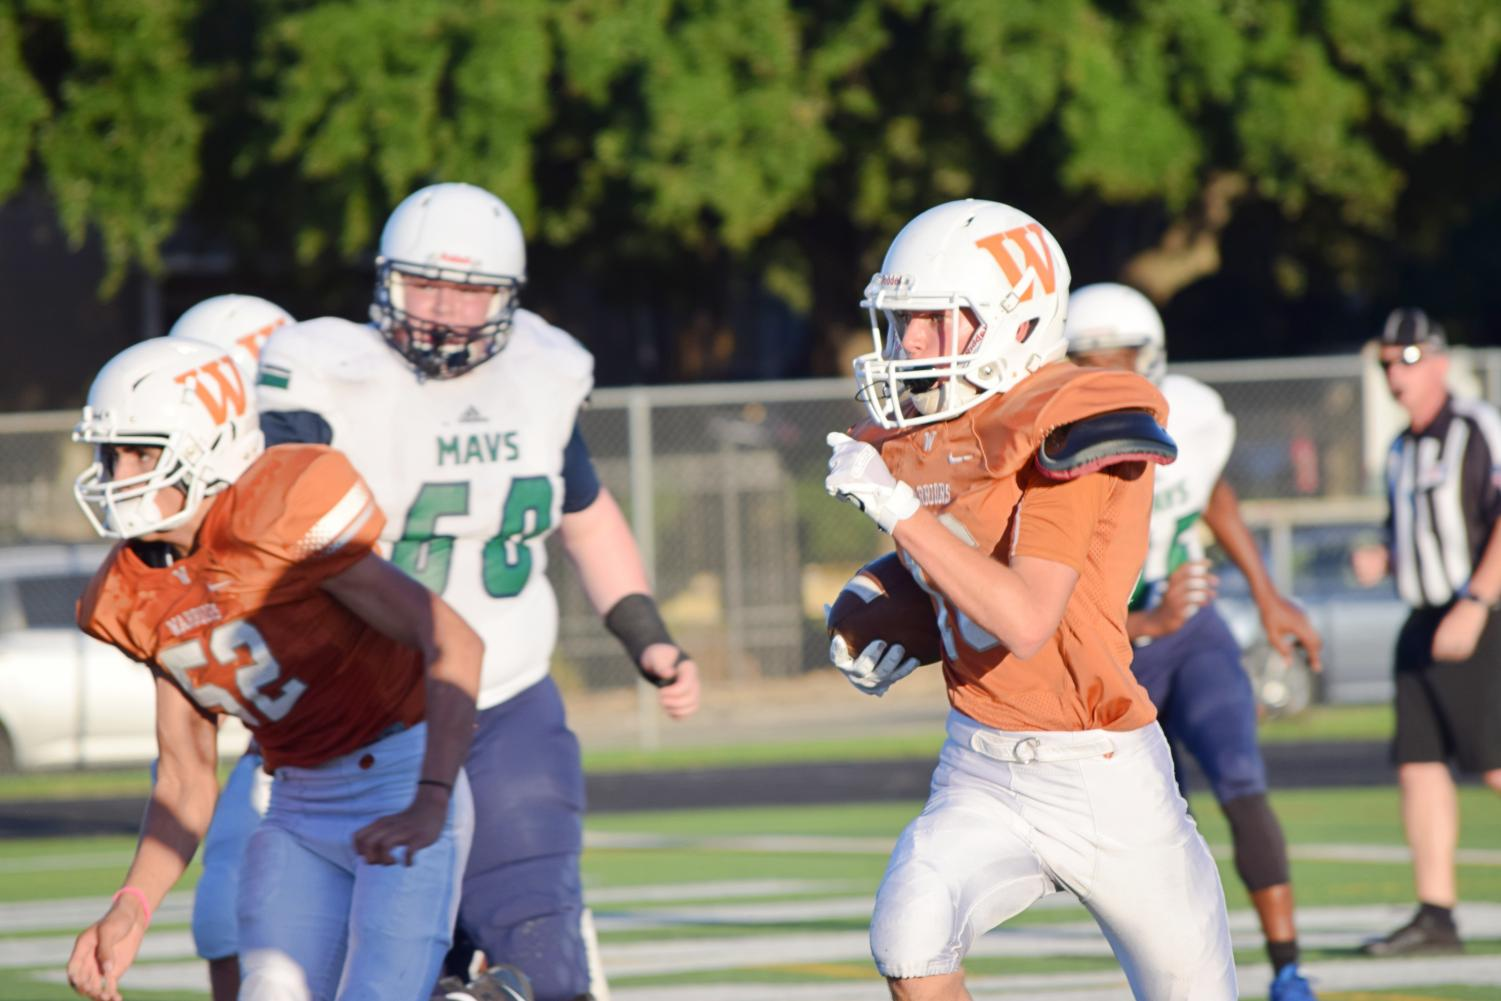 Eric+Uffelman+%2721+runs+with+ball+looking+for+an+opening+in+the+McNeil+defense.